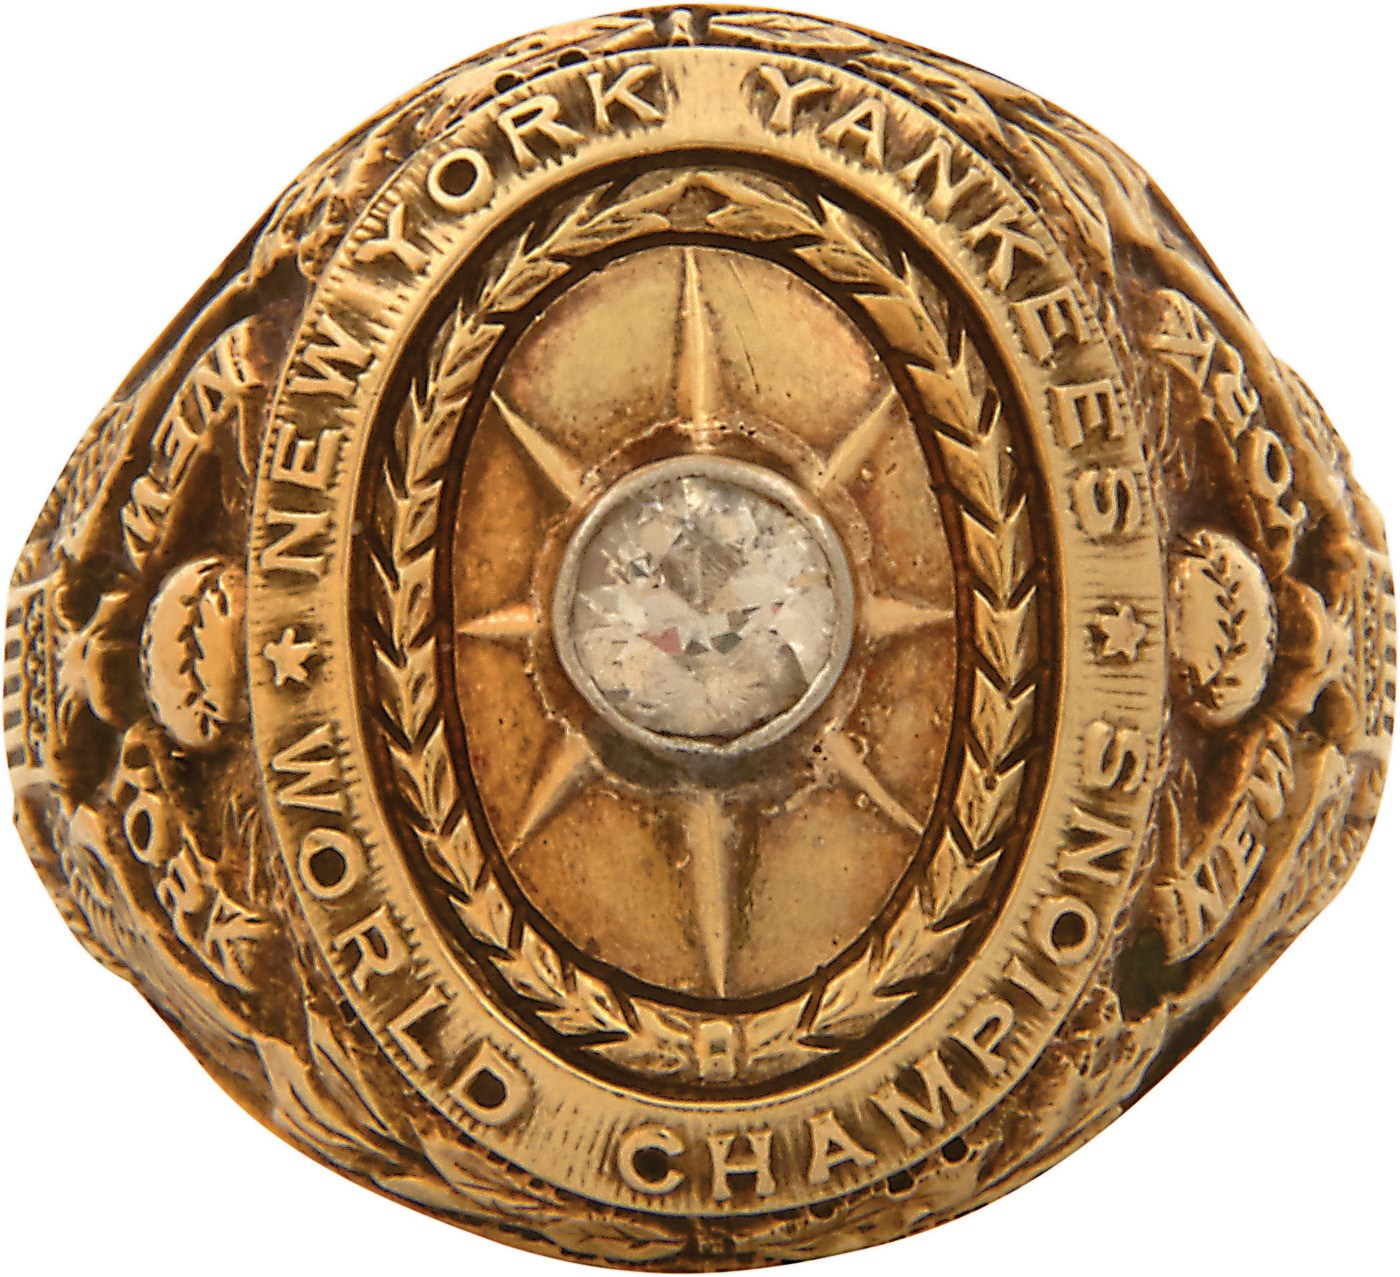 Babe Ruth's 1927 New York Yankees World Series Ring